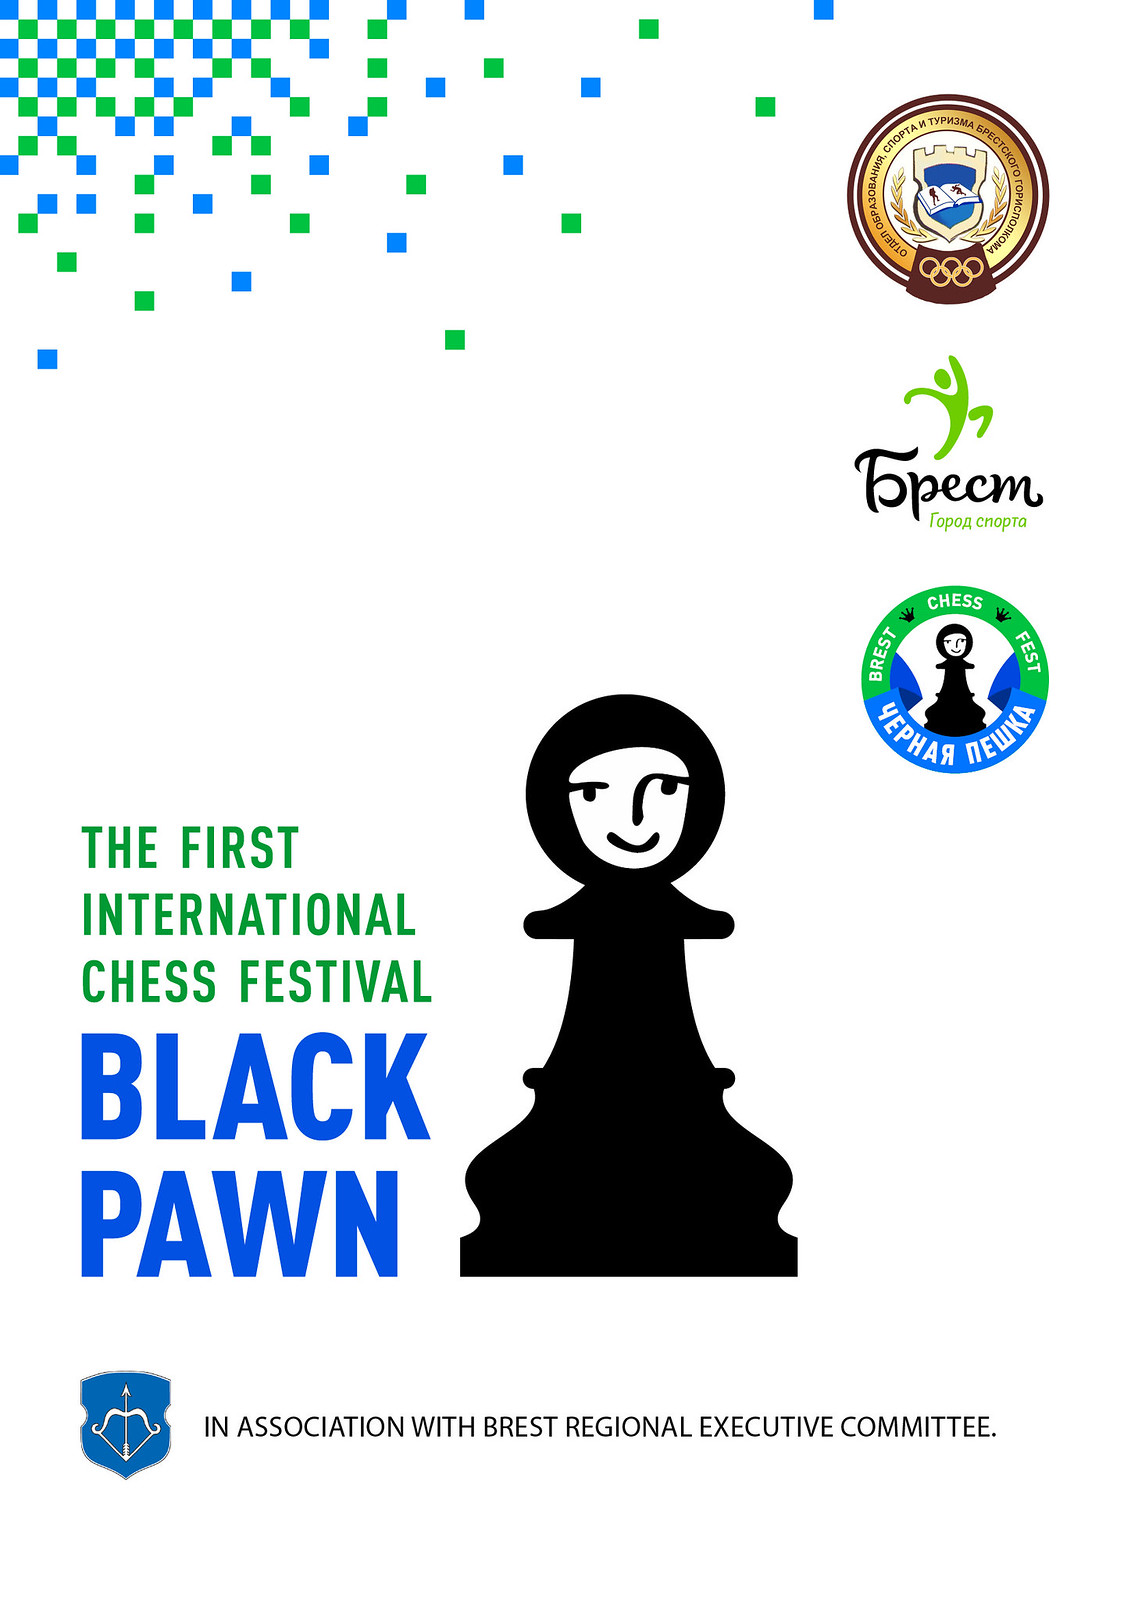 chess festival Black pawn